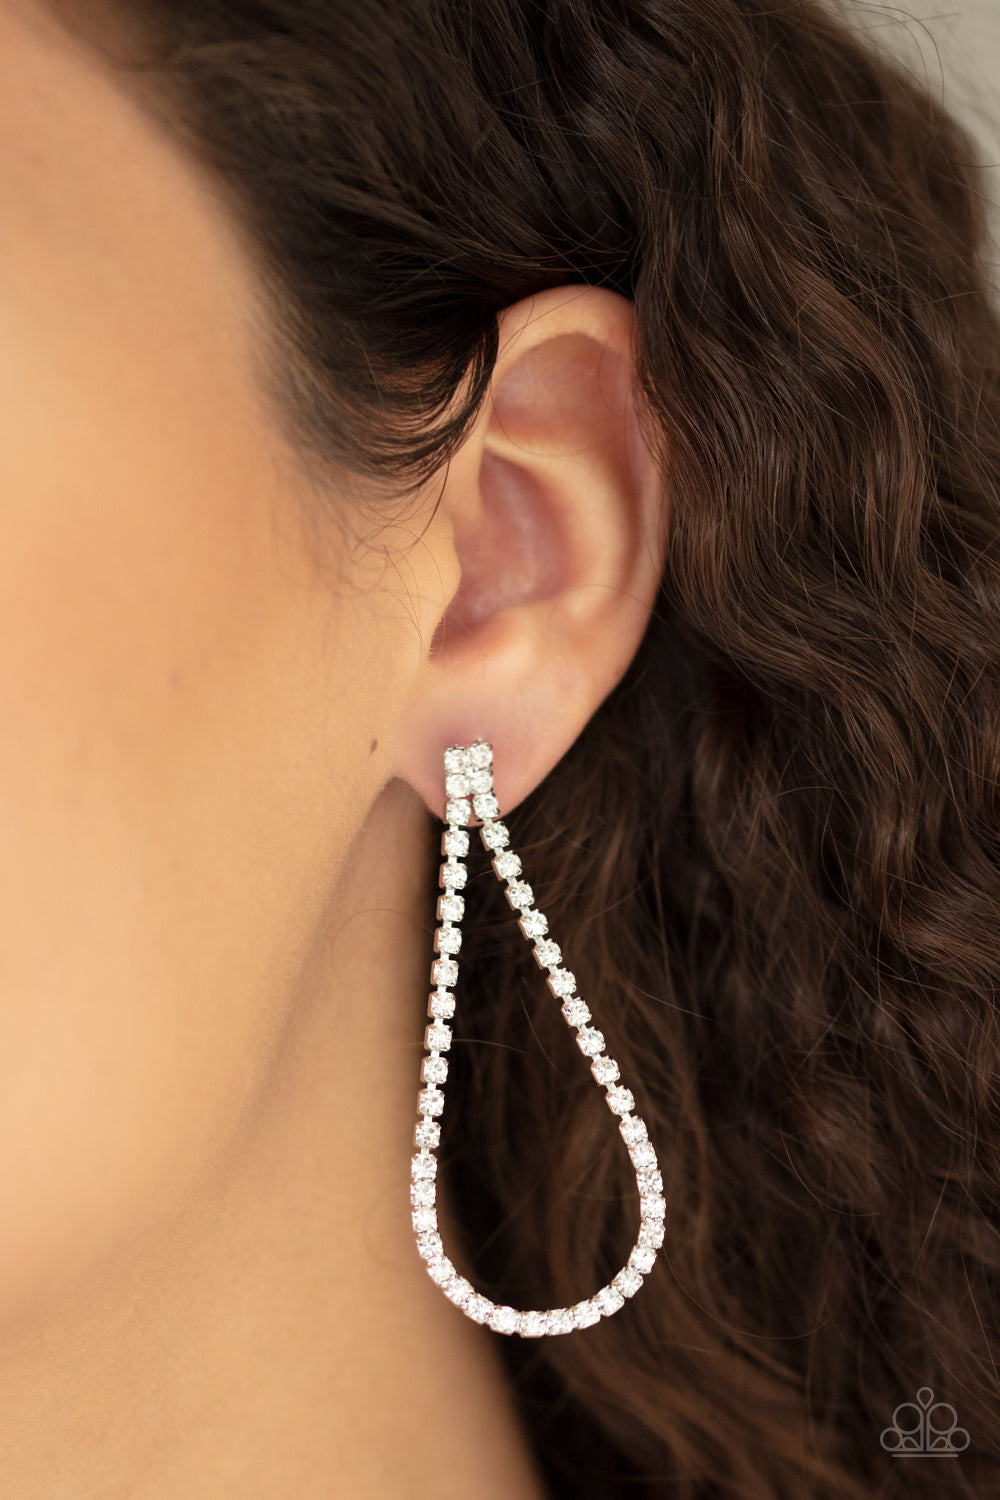 Paparazzi Jewelry & Accessories - Diamond Drops - White Earrings. Bling By Titia Boutique